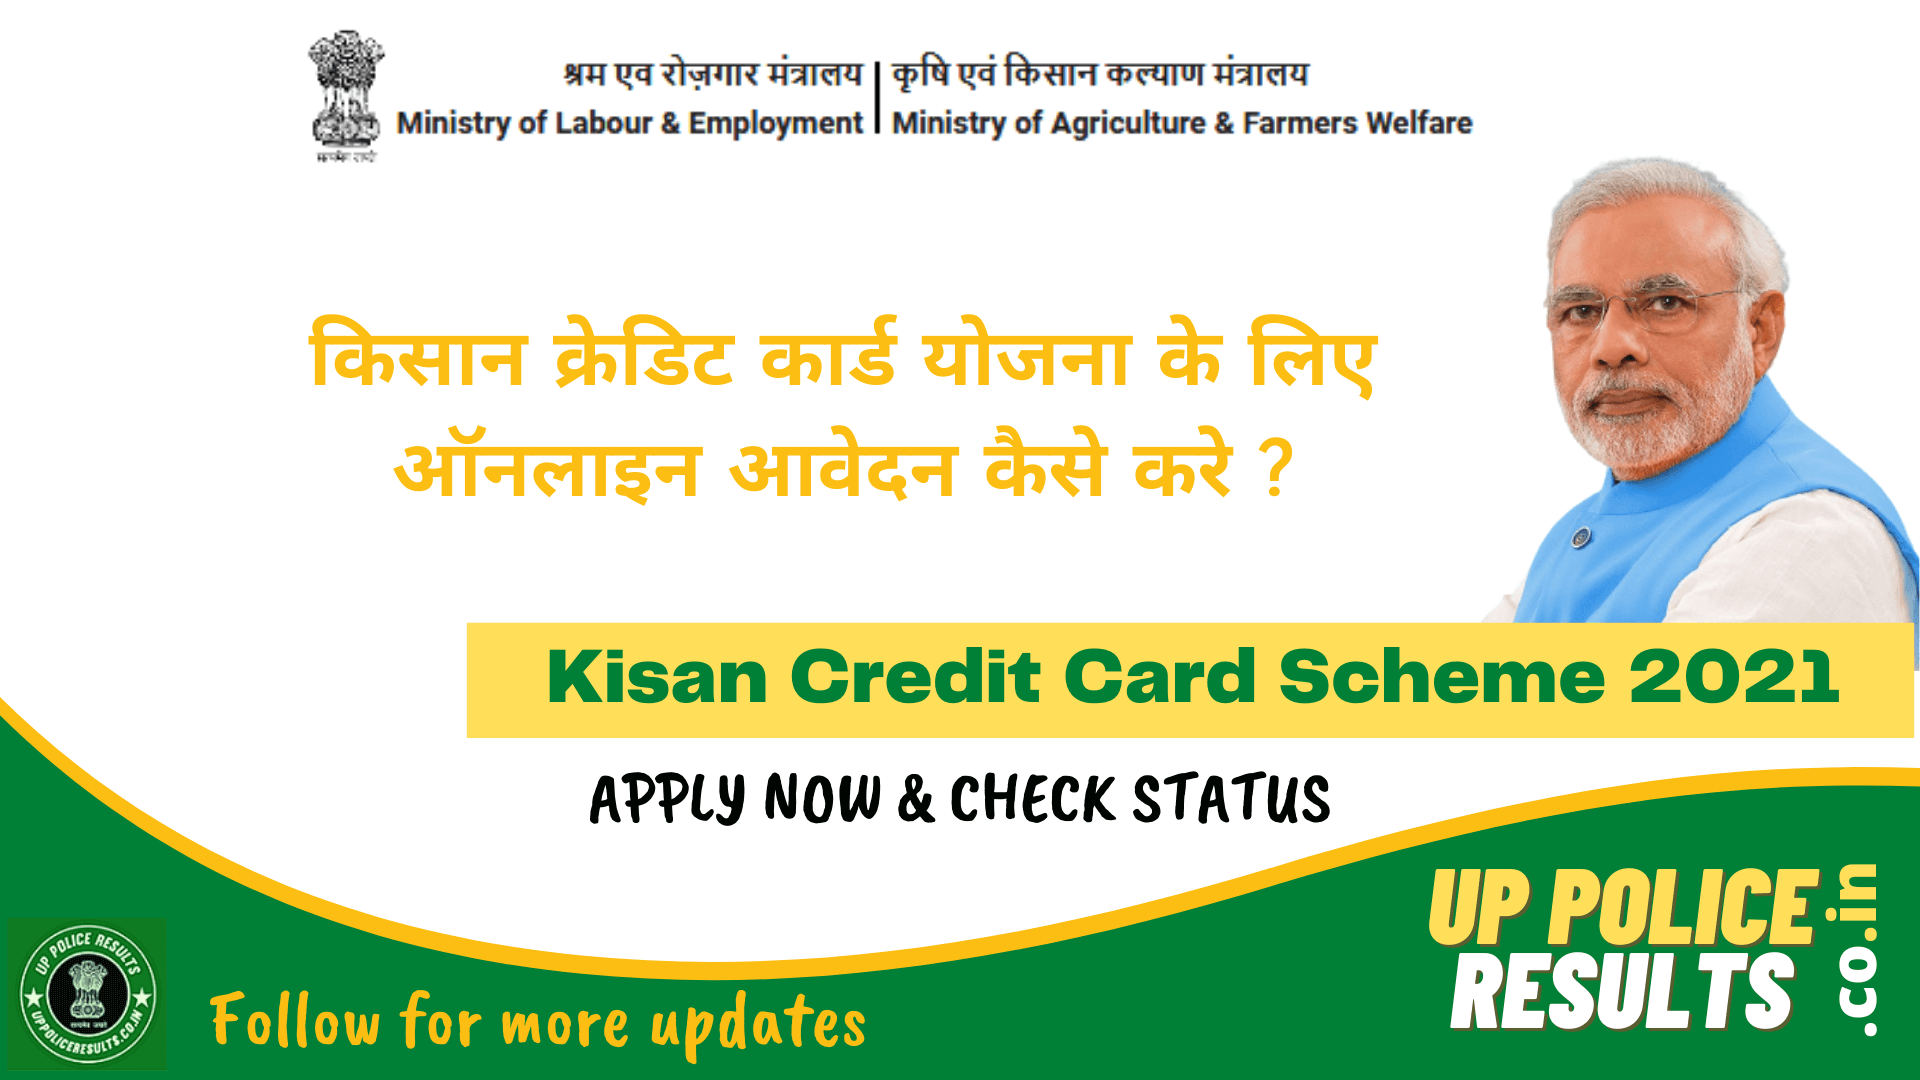 Kisan Credit card scheme,Registration Process,Eligibility, and Objective